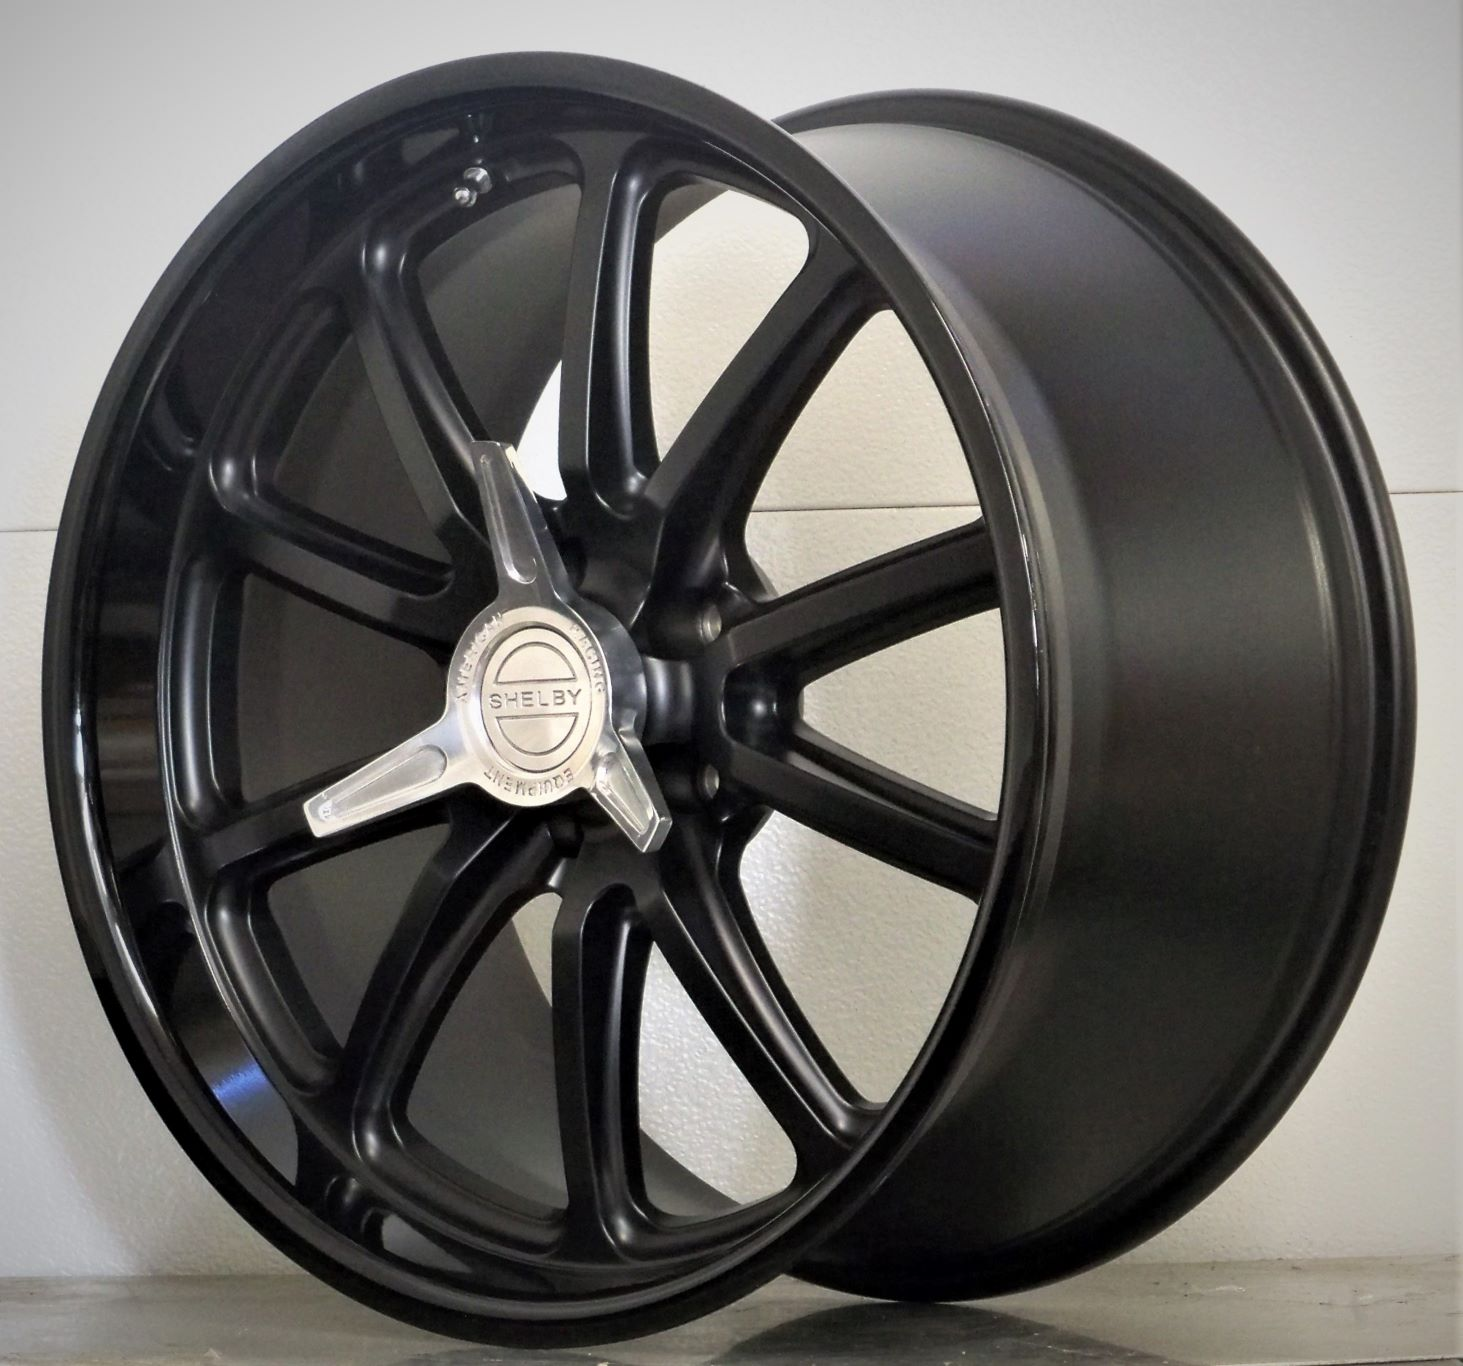 20s set of 4 RSB US Mags Shelby spinners Satin Black 05-20